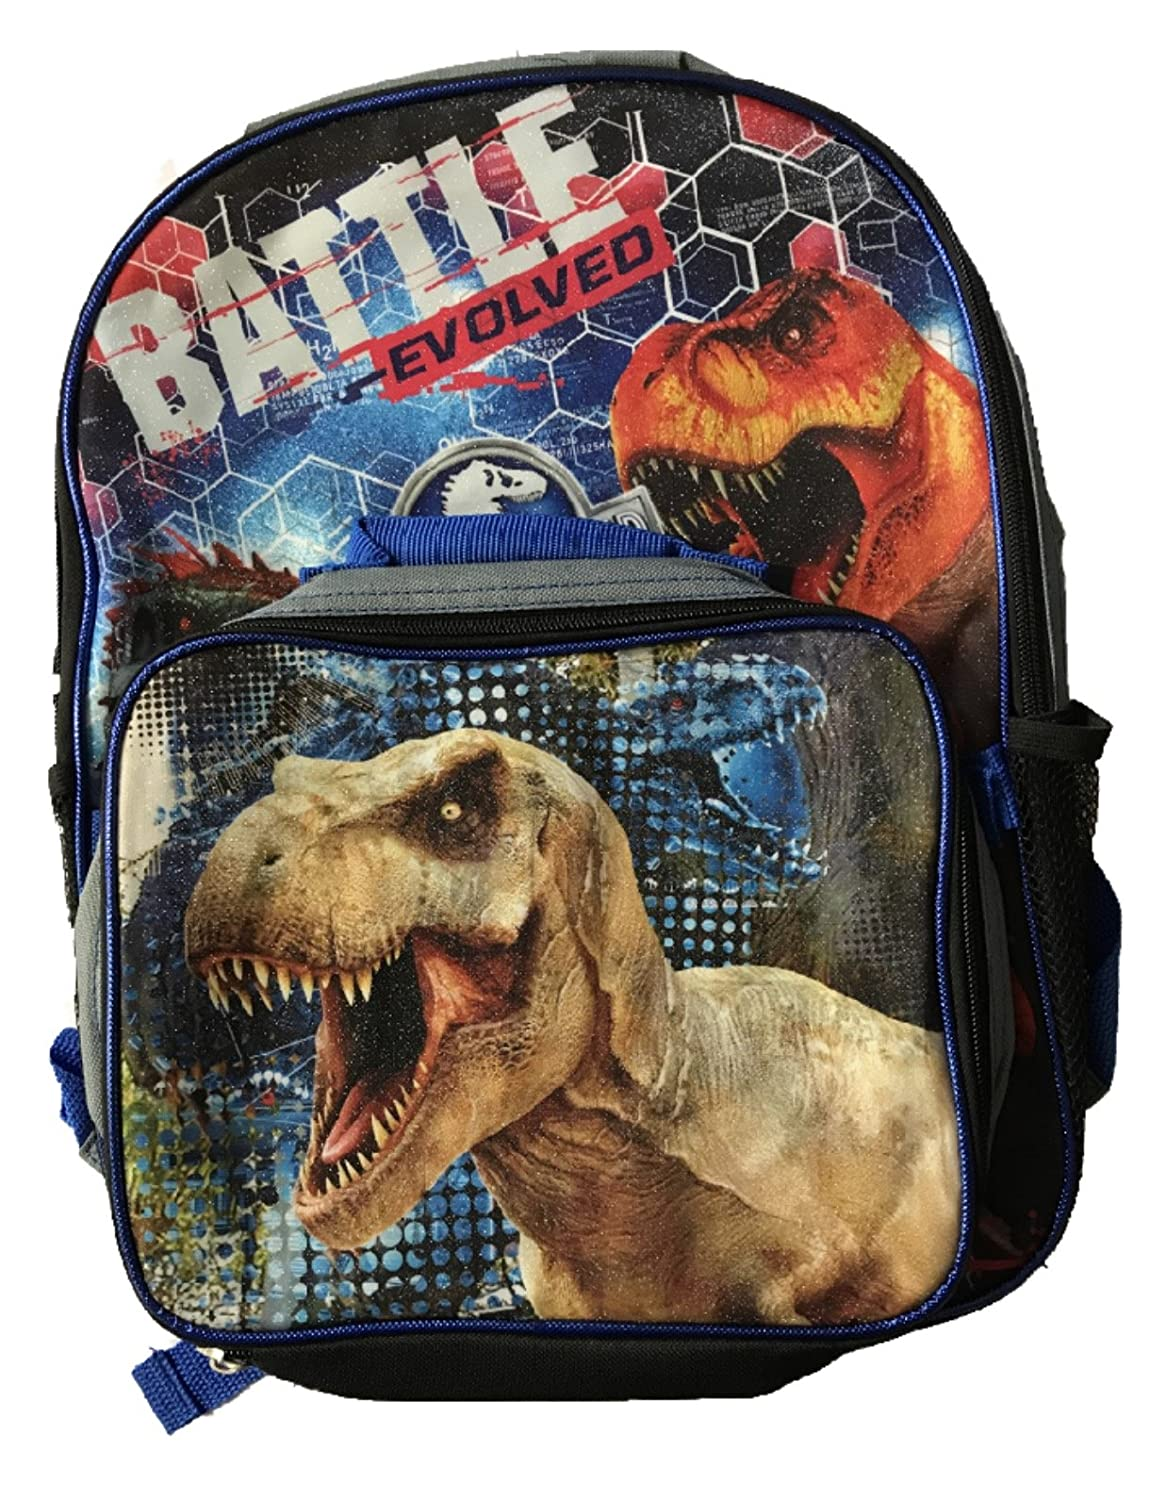 Jurassic World Large School Backpack with Insulated Lunch Bag - Kids   B074ML5YH4